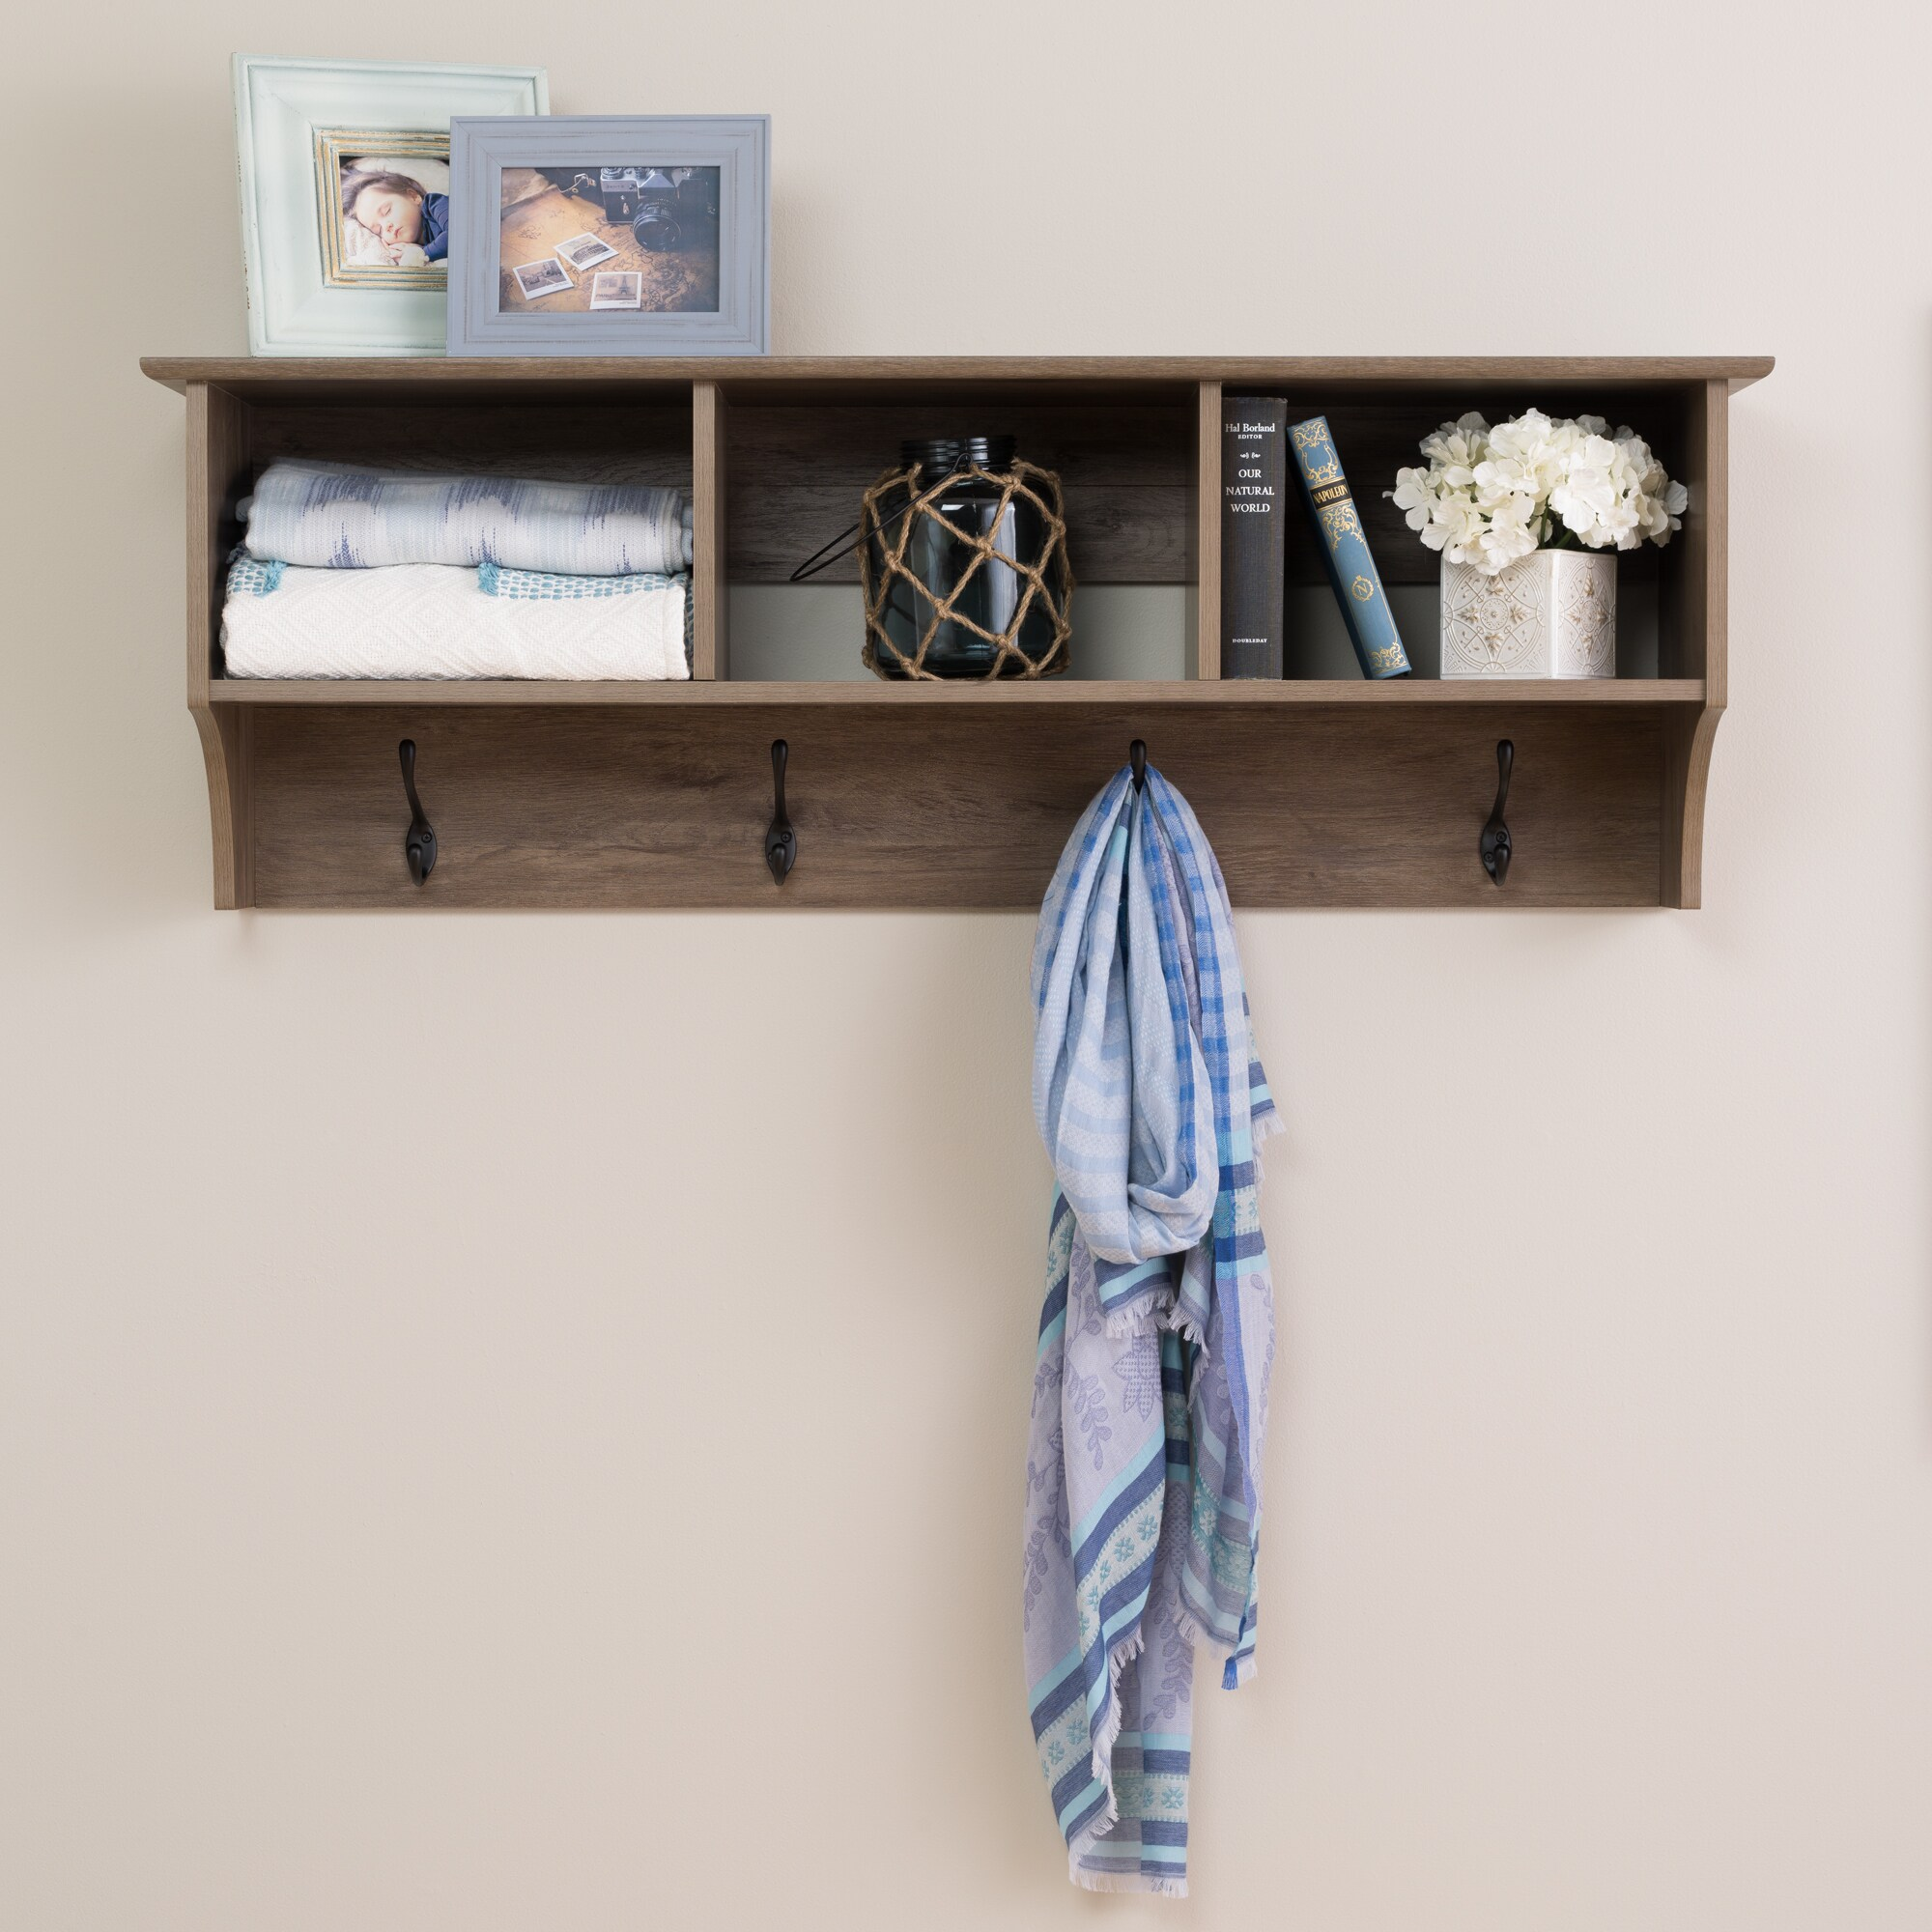 prepac drifted grey wood inch wide floating entryway shelf with bench free shipping today wall shelves for components kitchen cup holder organizer stand storage industrial